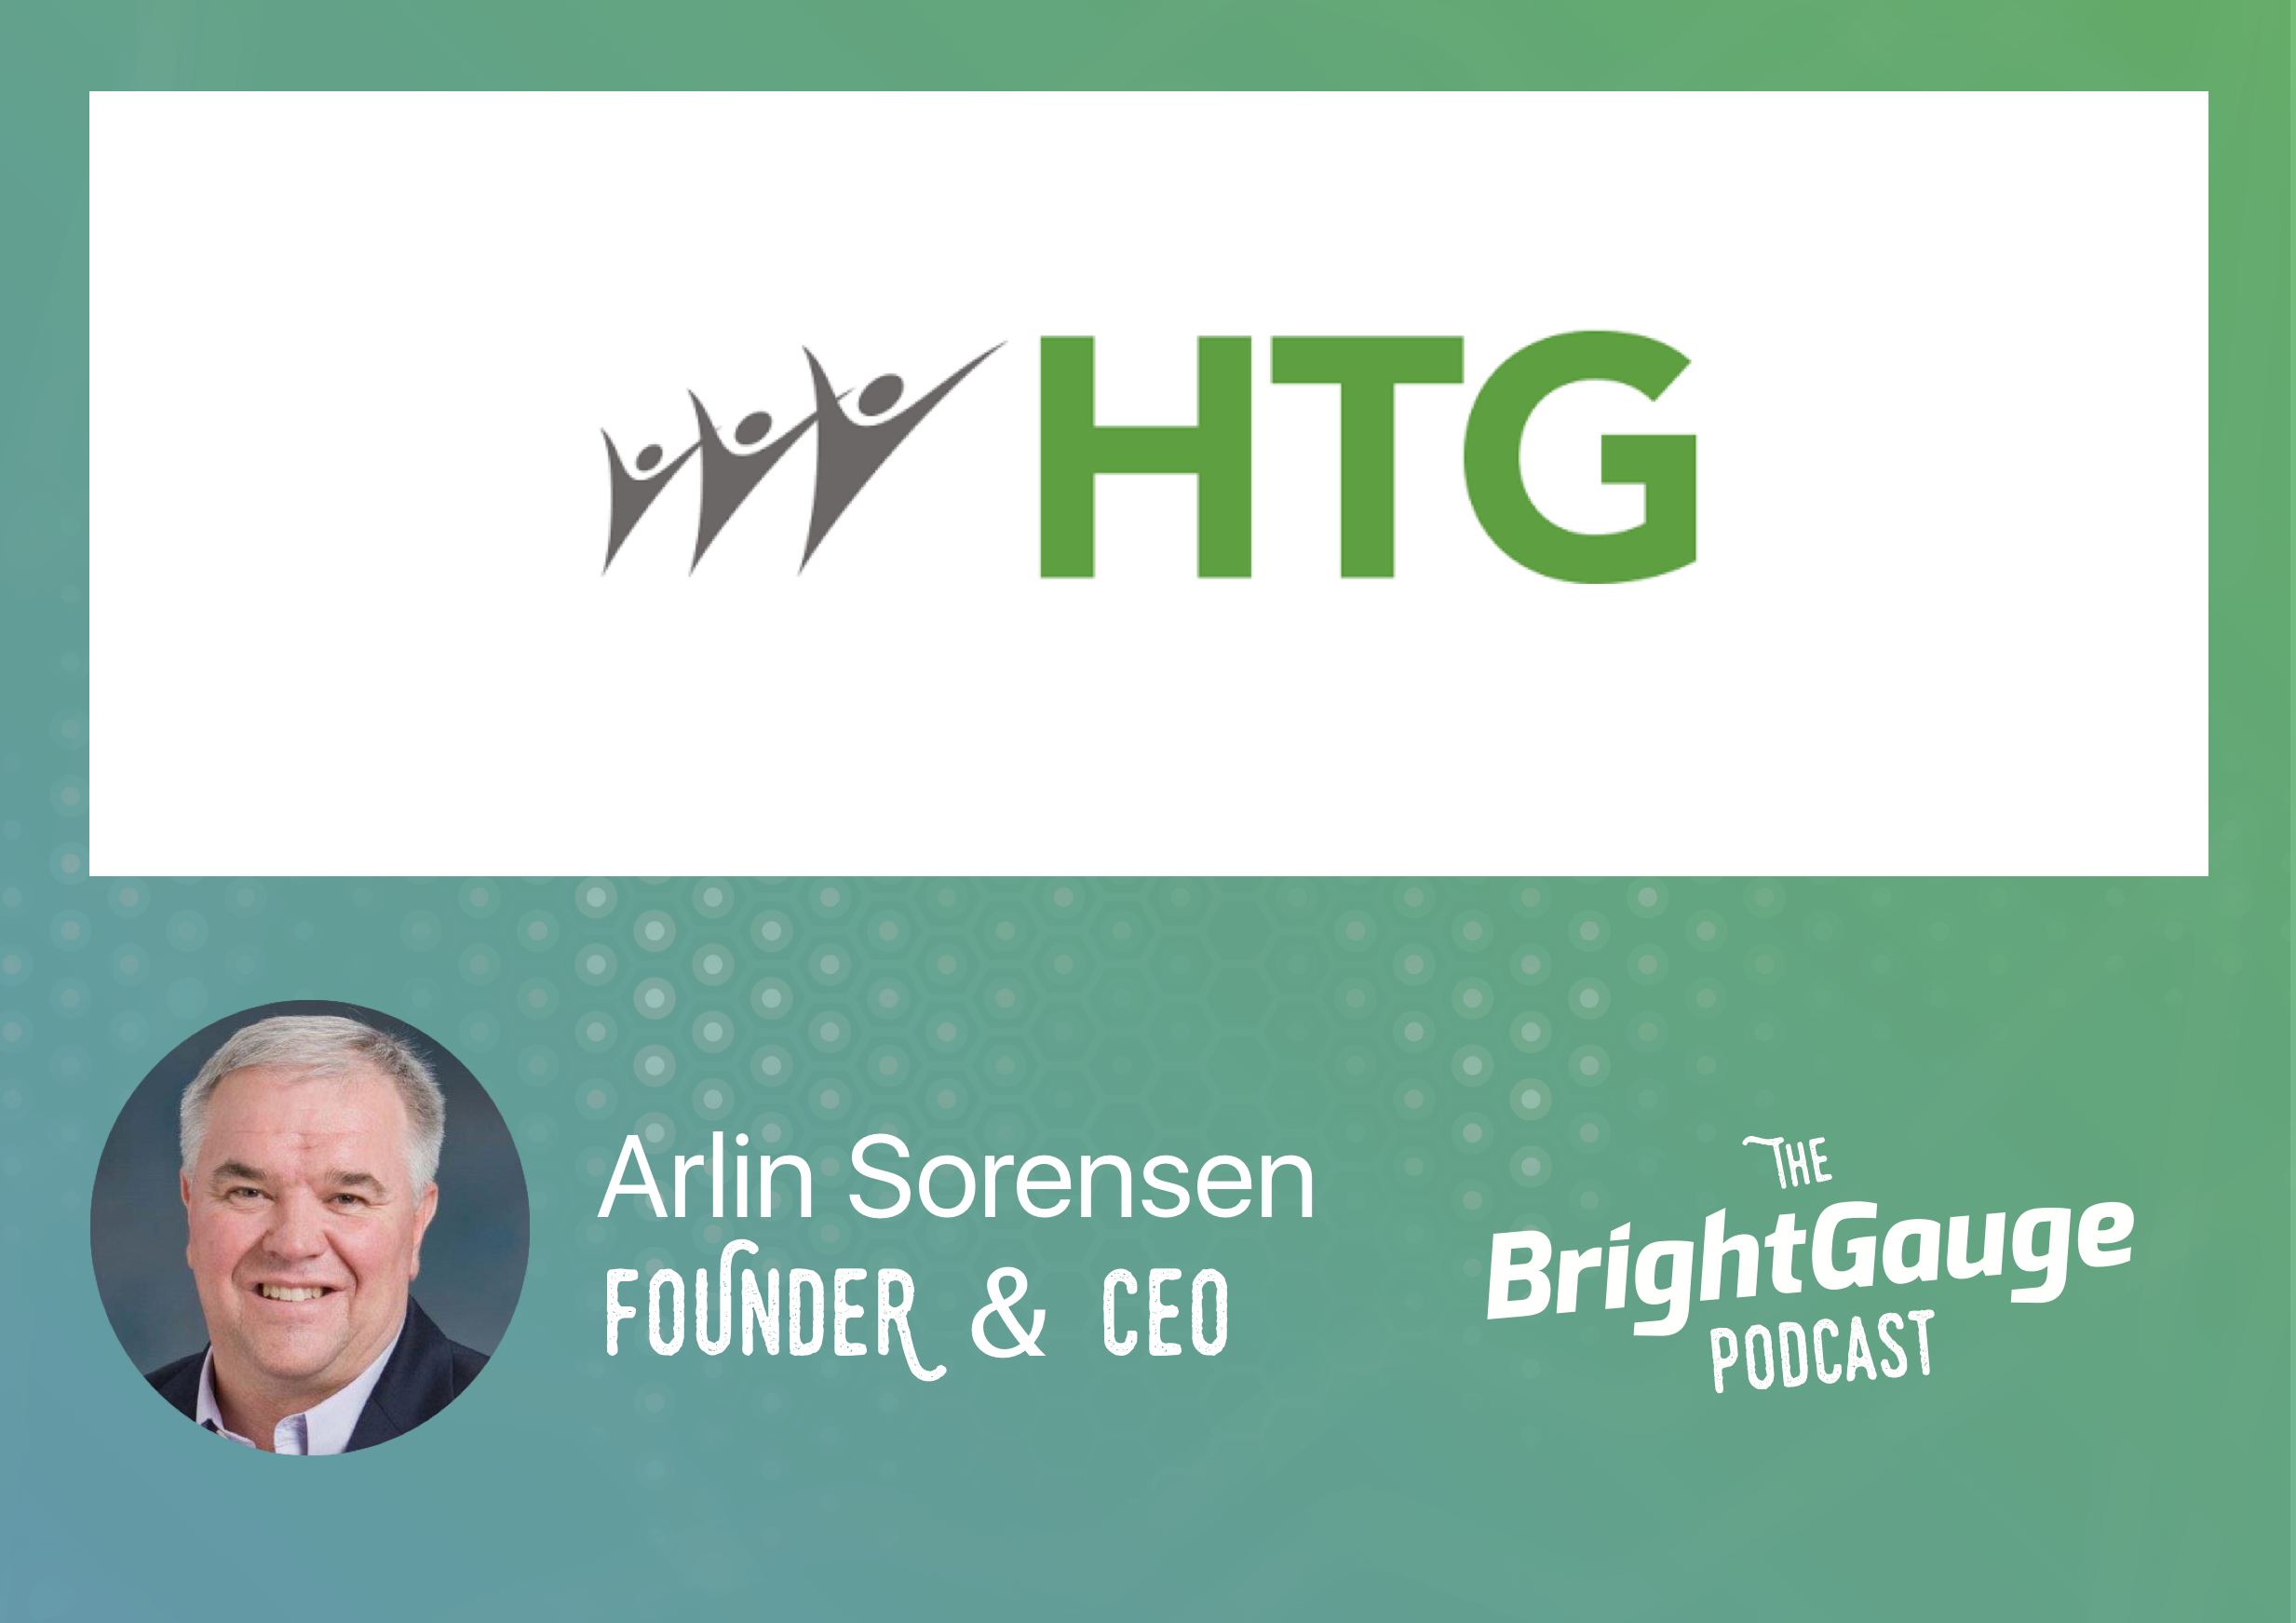 [Podcast] Episode 35 with Arlin Sorensen of HTG Peer Groups